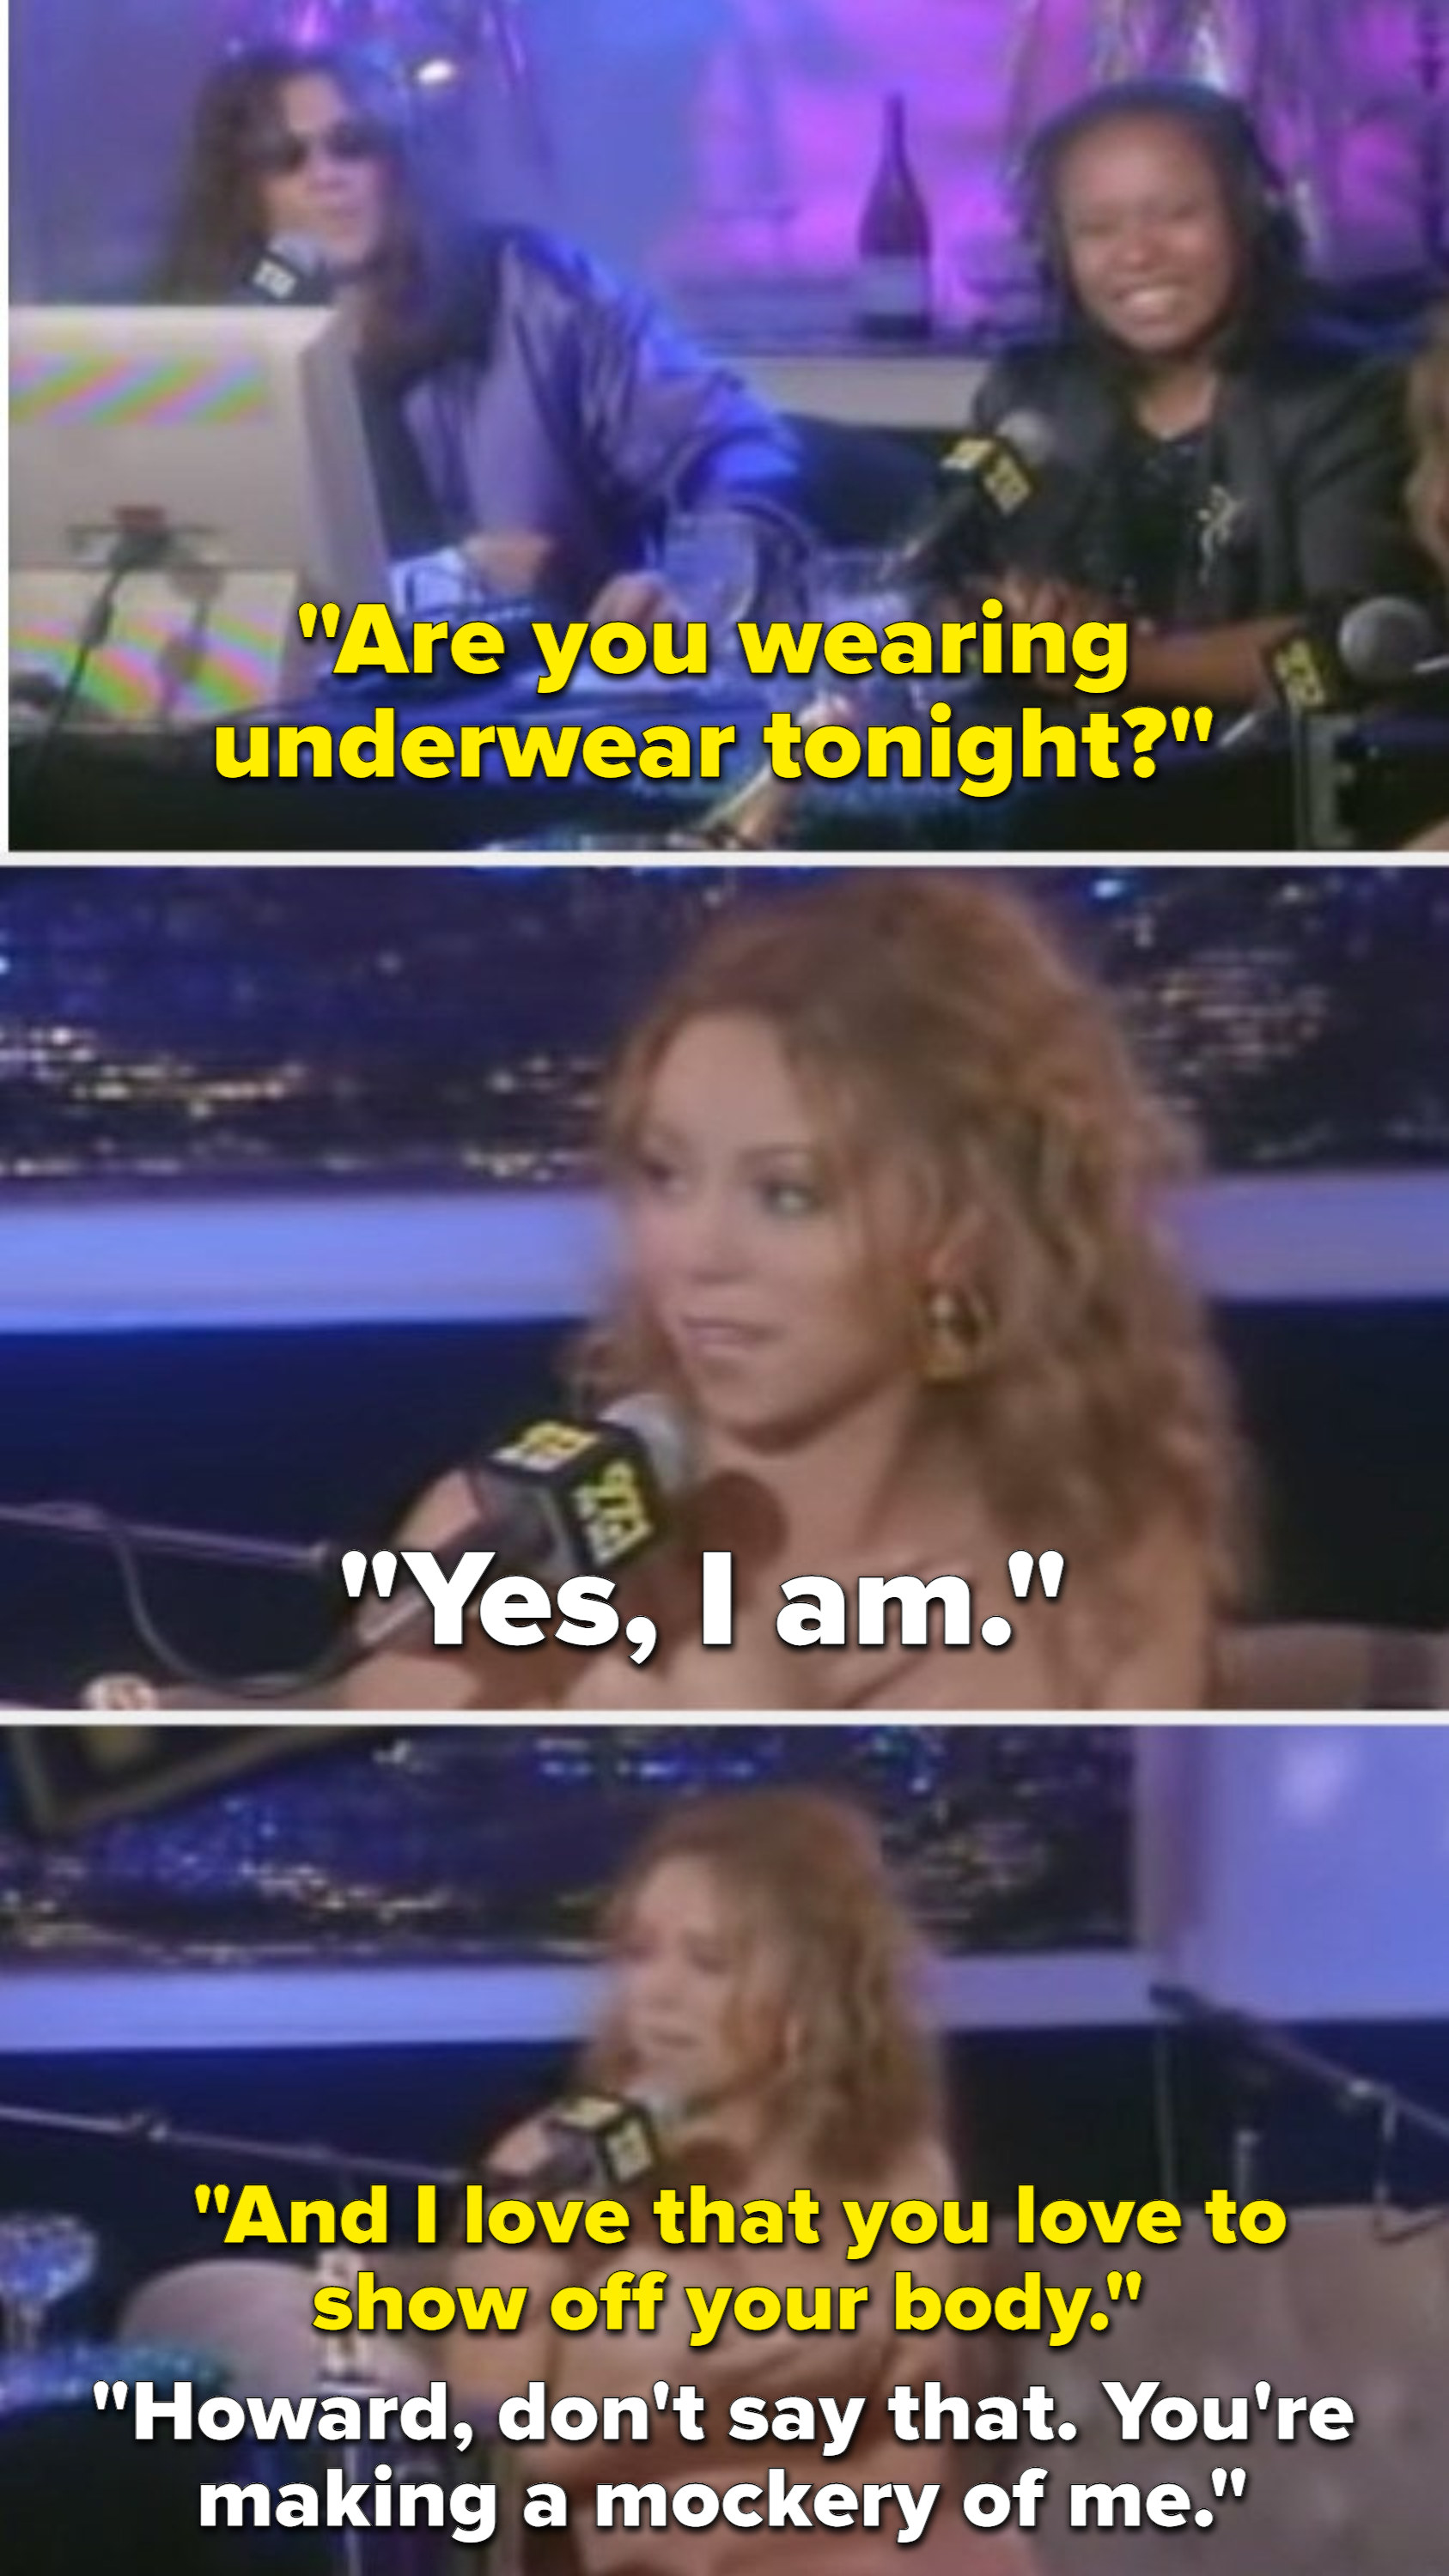 Howard asking mariah if she's wearing underwear, and her saying he's making a mockery of her